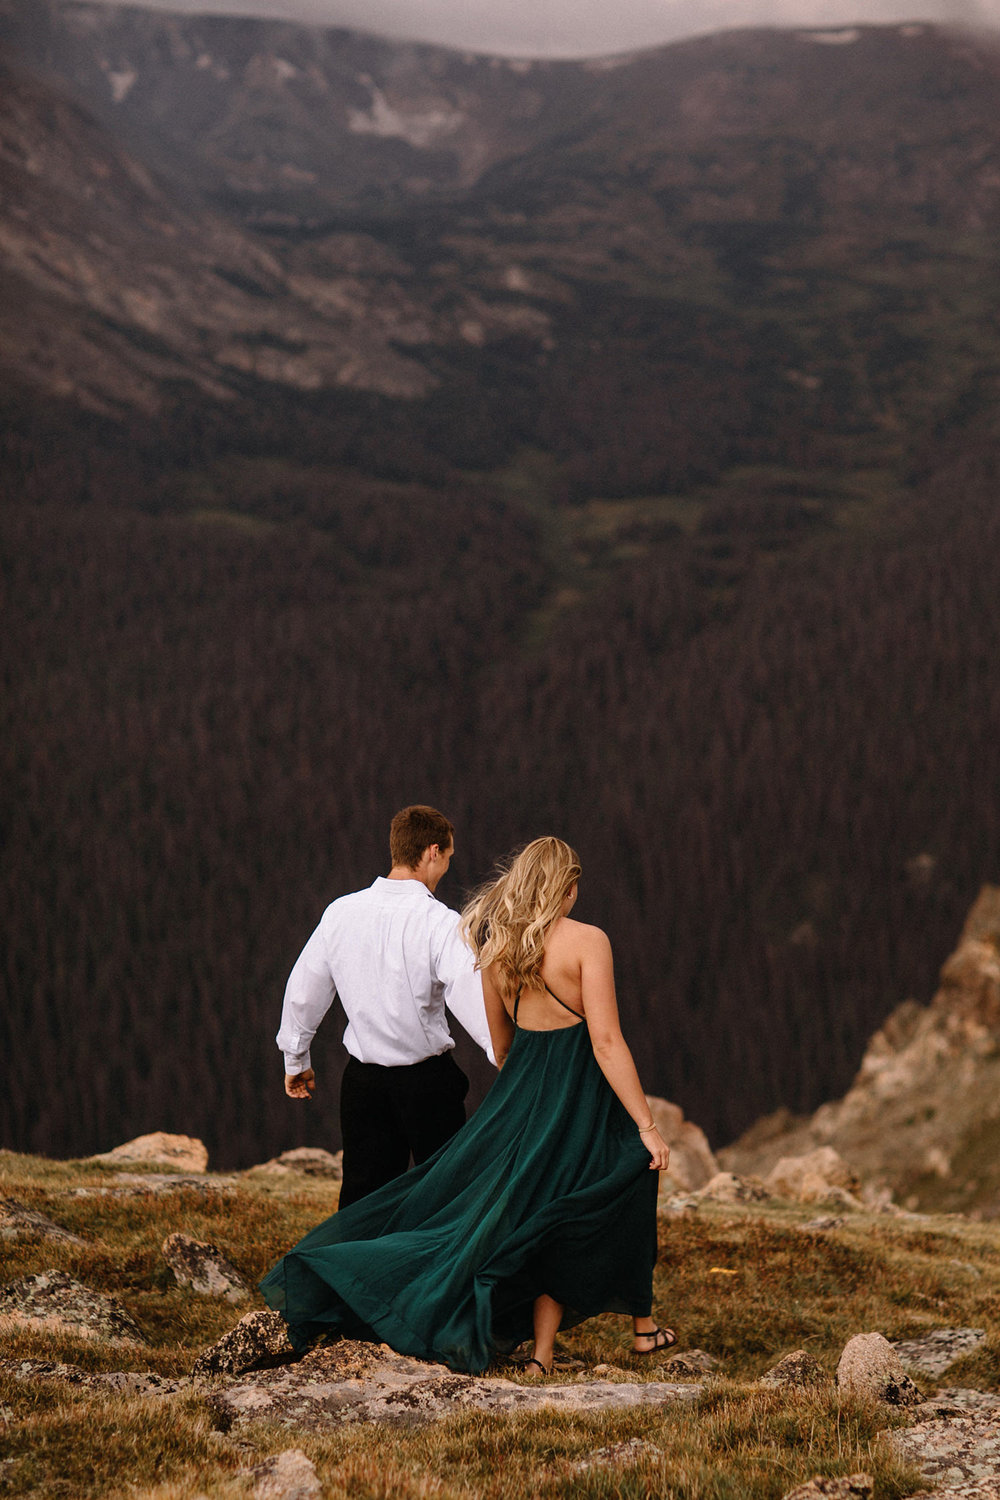 Rocky Mountain Engagement National Park Engaged Photos Wedding Elopement Portrait Mountains Trail Ridge Rd Peak Alpine Dress Lulus Rules Permit Photo Adventure Love Couples Destination Liz Osban photography Cheyenne Wyoming17.jpg